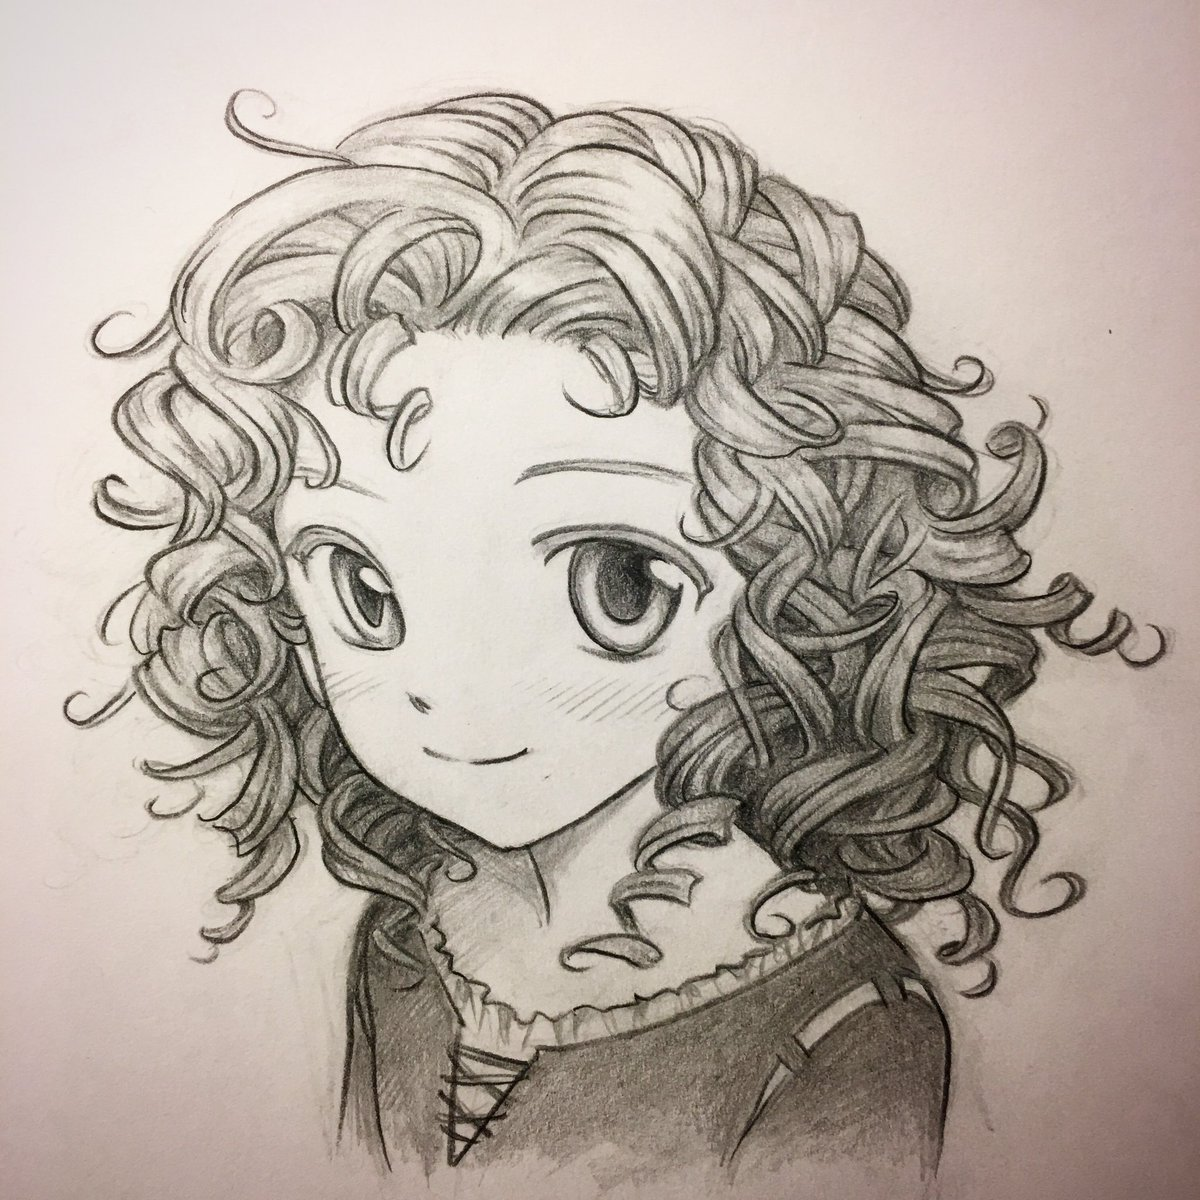 Mark Crilley On Twitter An Attempt At Drawing Curly Hair It S